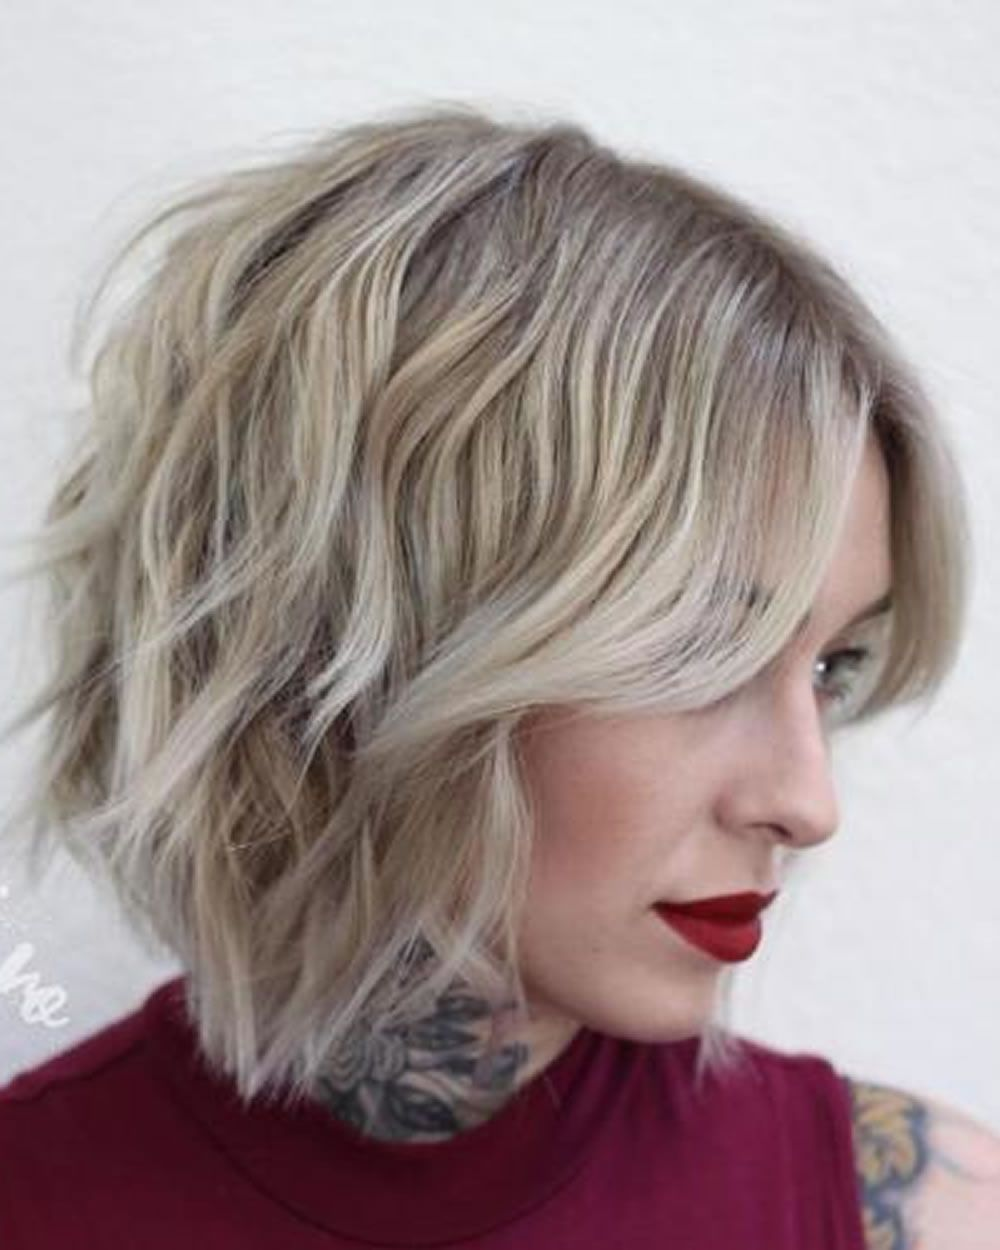 Best Short Choppy Hairstyles 2018 Hairstyles Fashion And